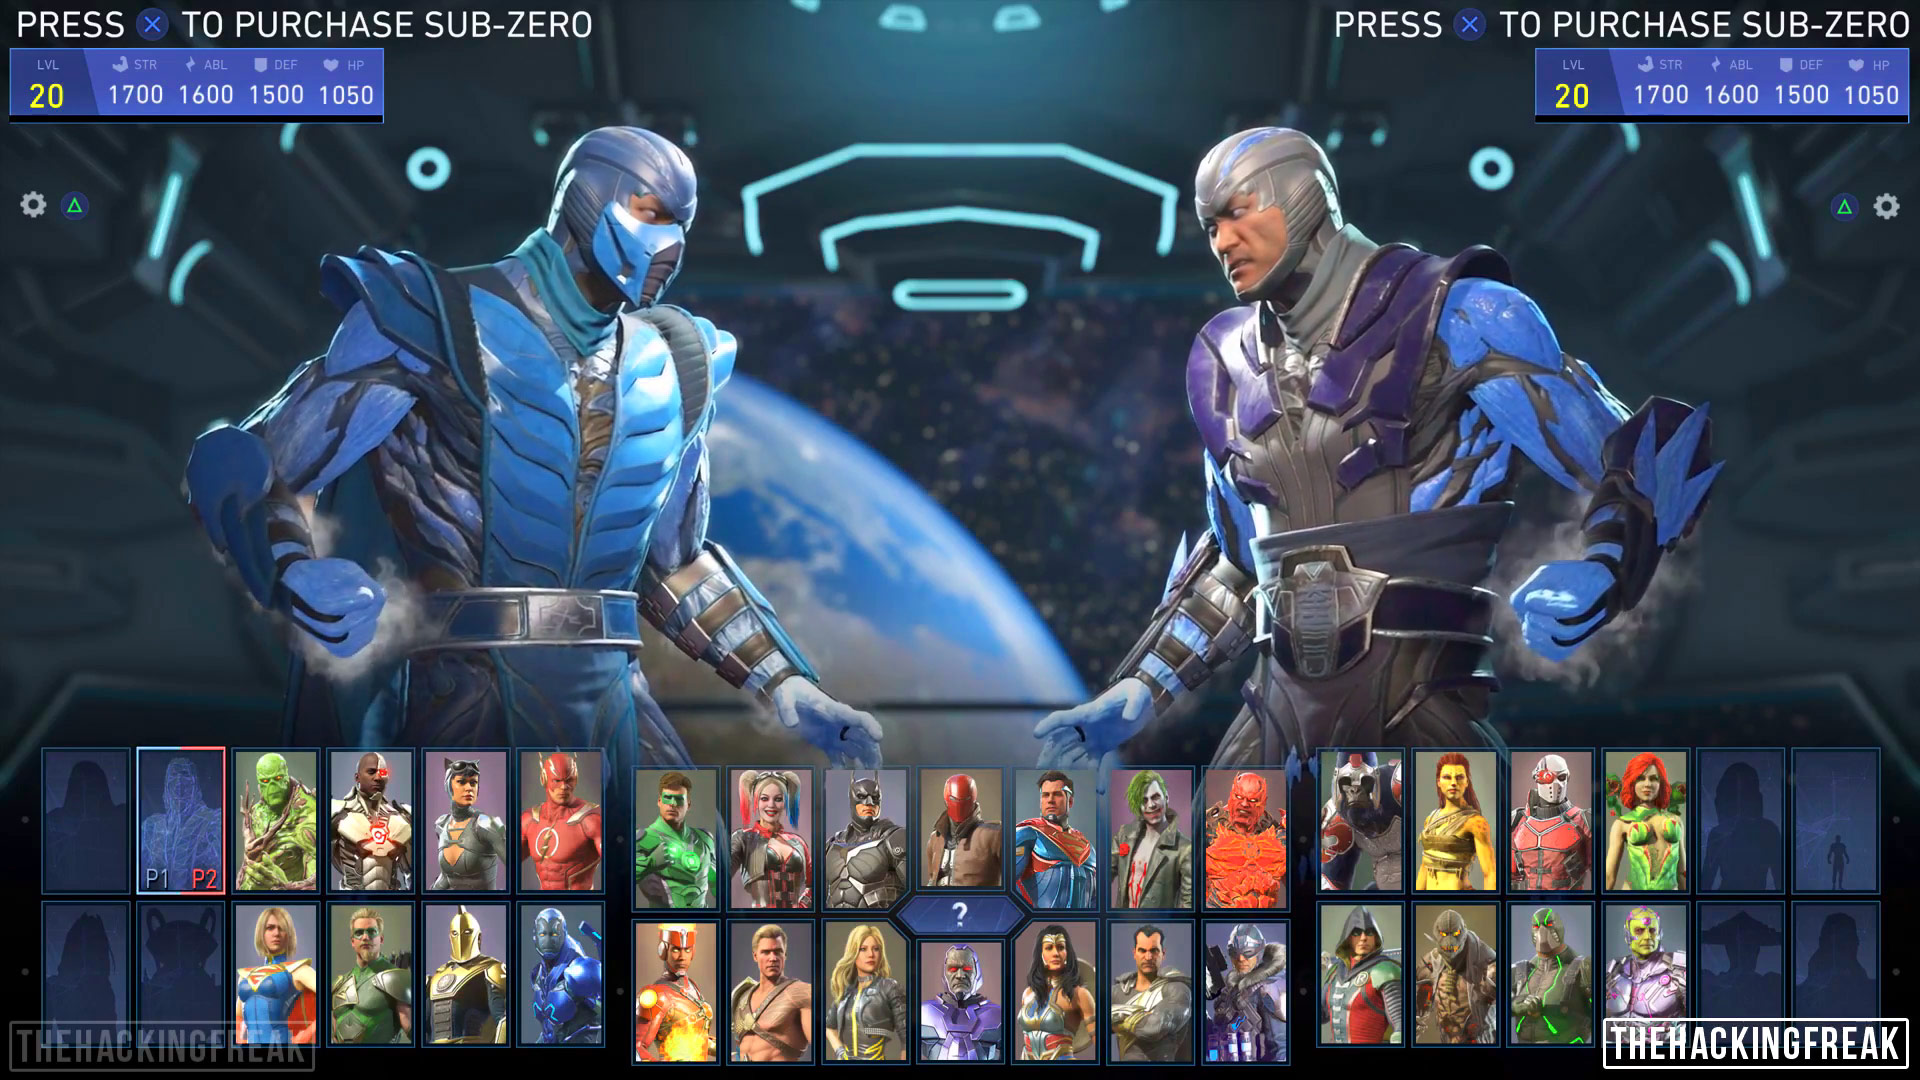 Sub Zero In Injustice 2 Character Select Images 4 Out Of 9 Image